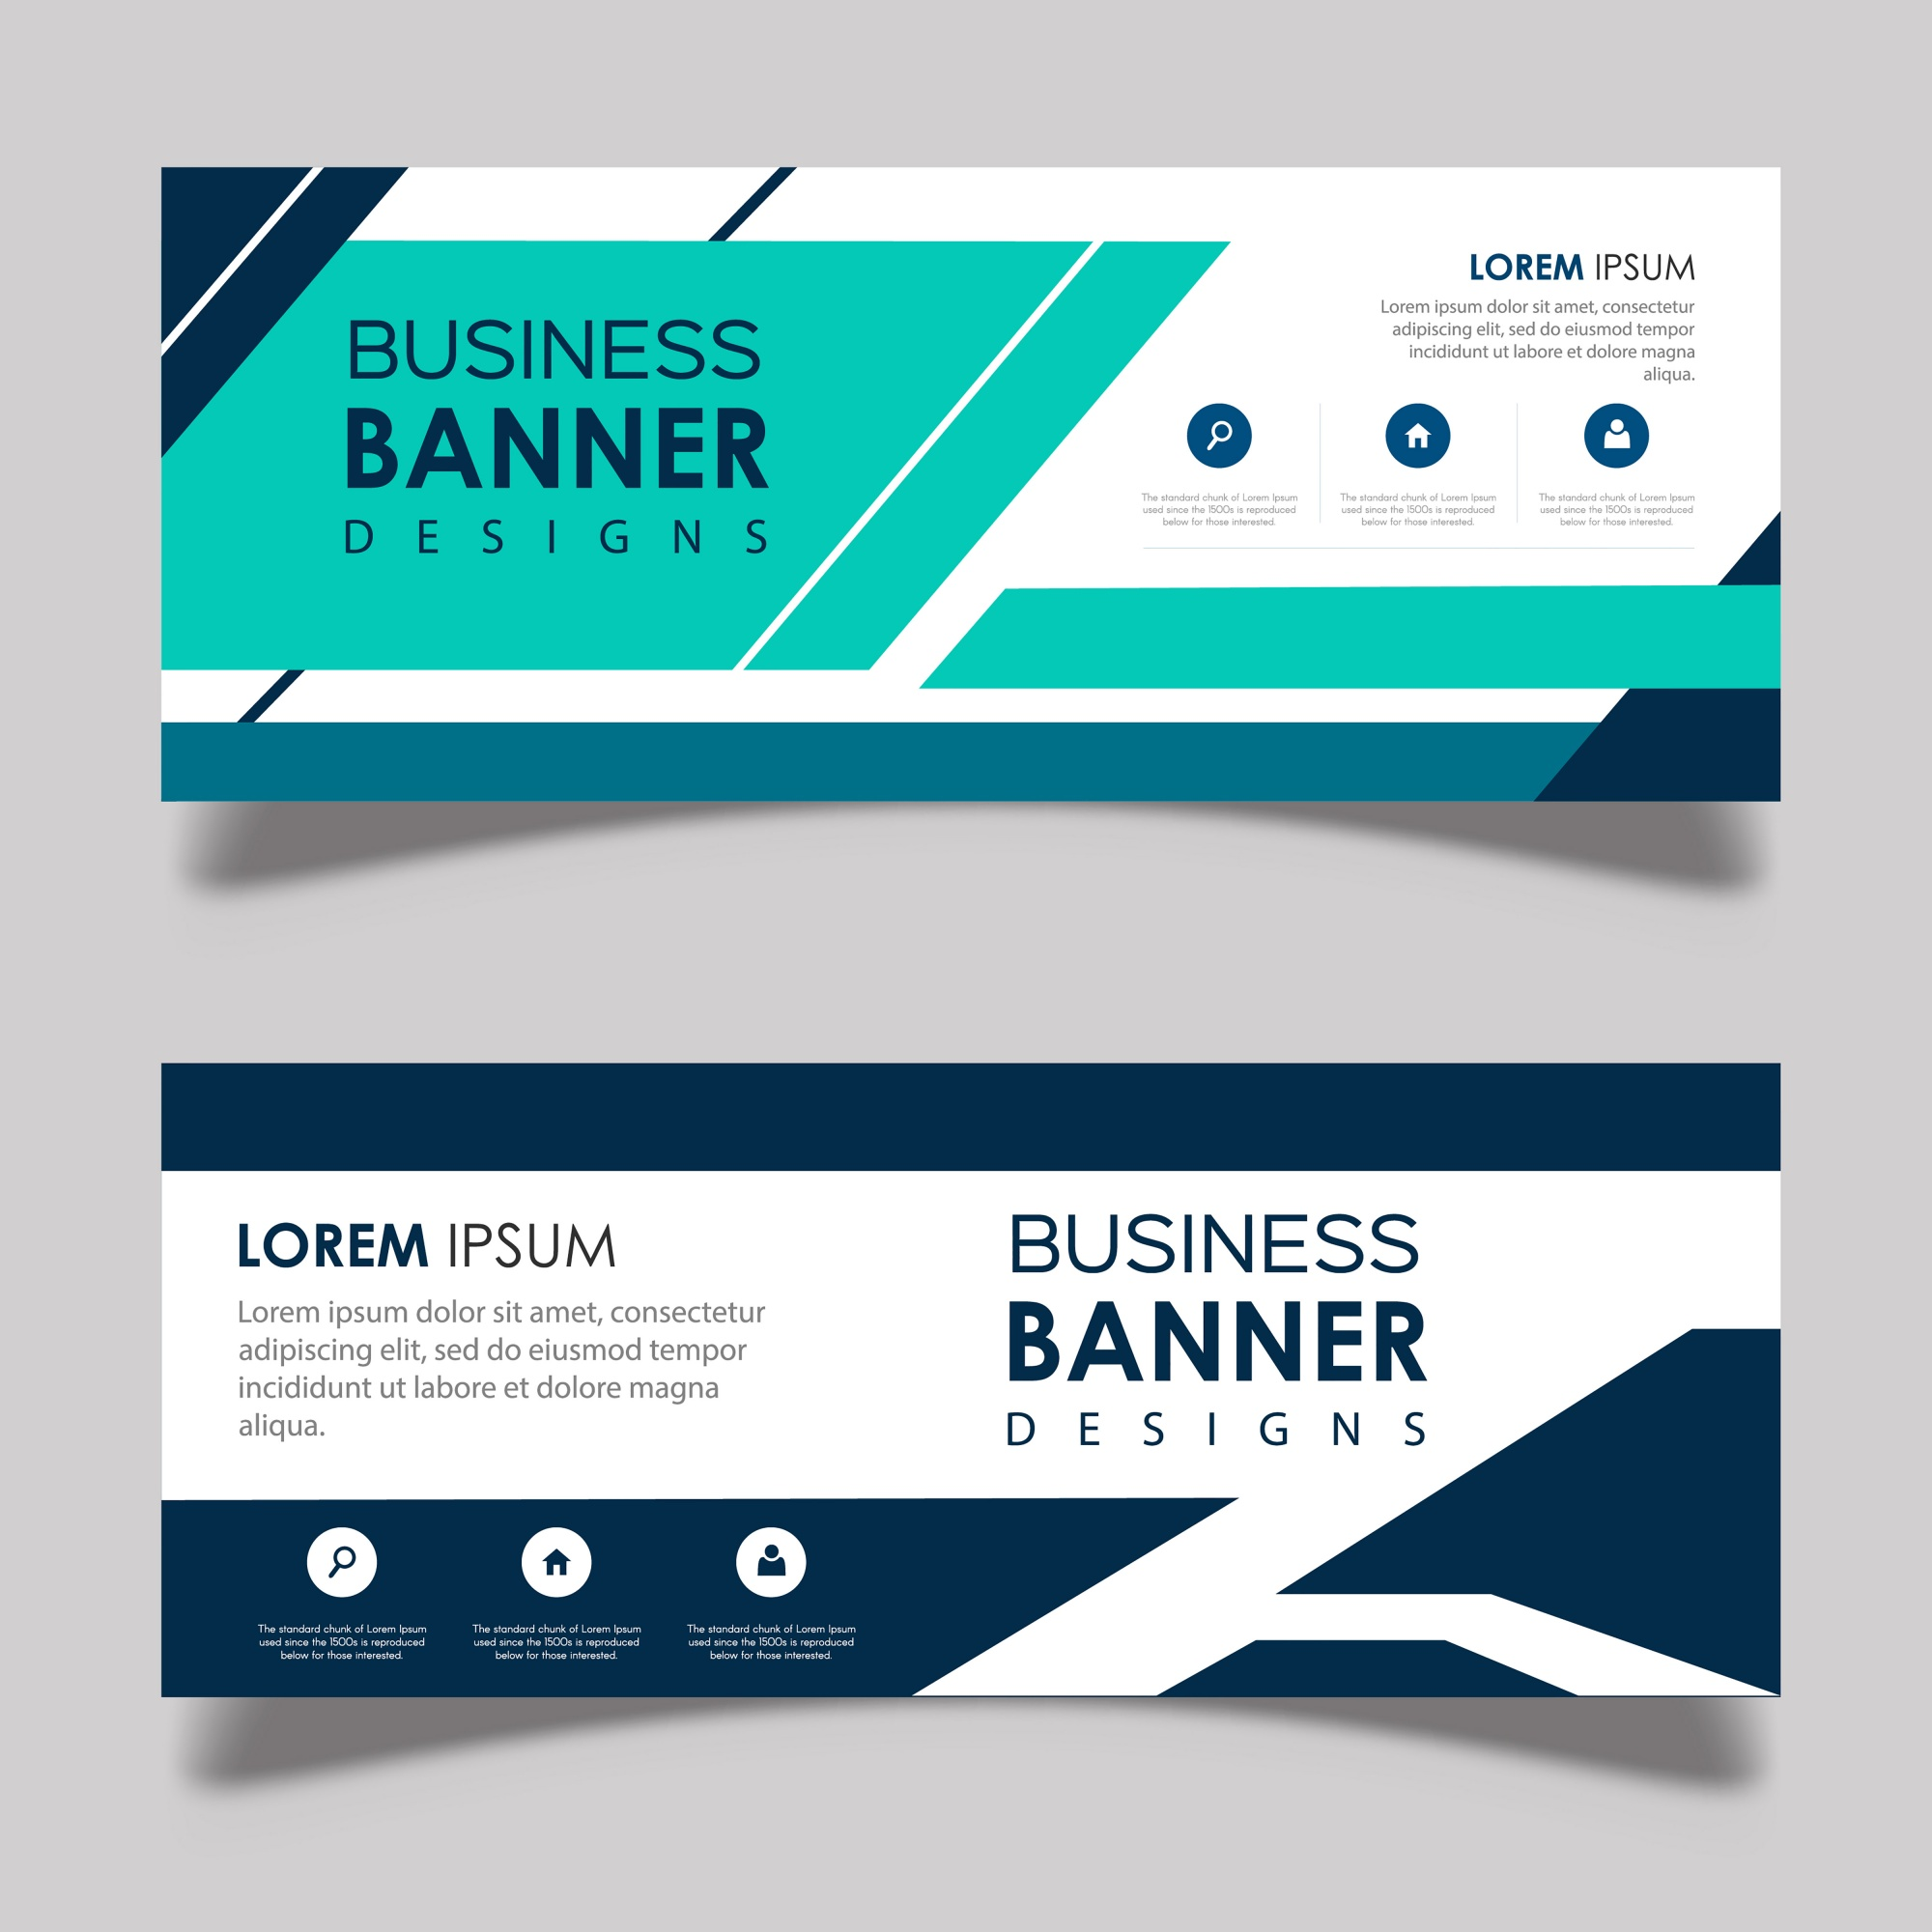 Abstract Vector Banner Designs